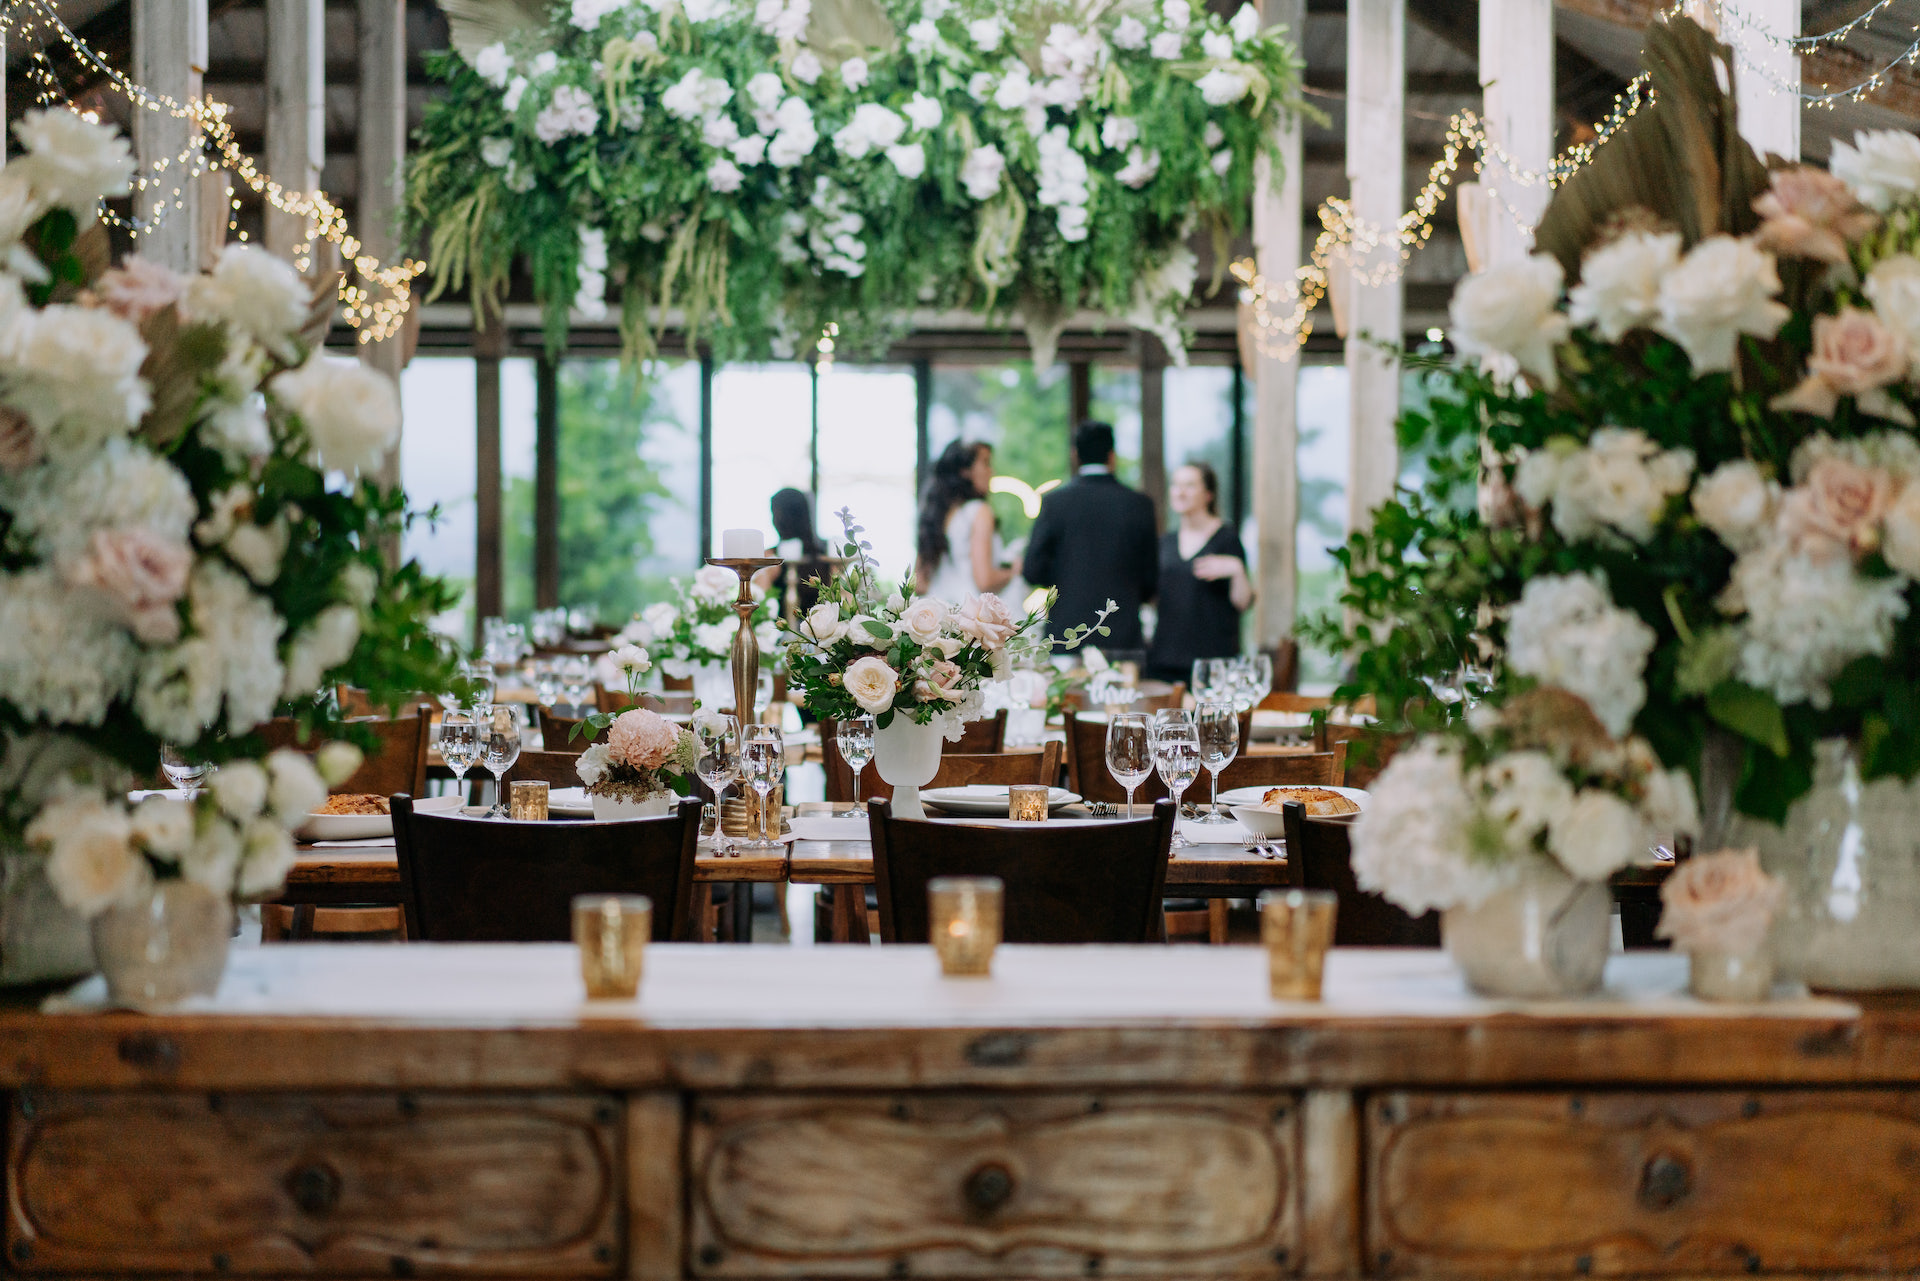 Neutral wedding flowers and white and green wedding flower tablescape styling by Yarra Valley Wedding florist Sassafras Flower Design.